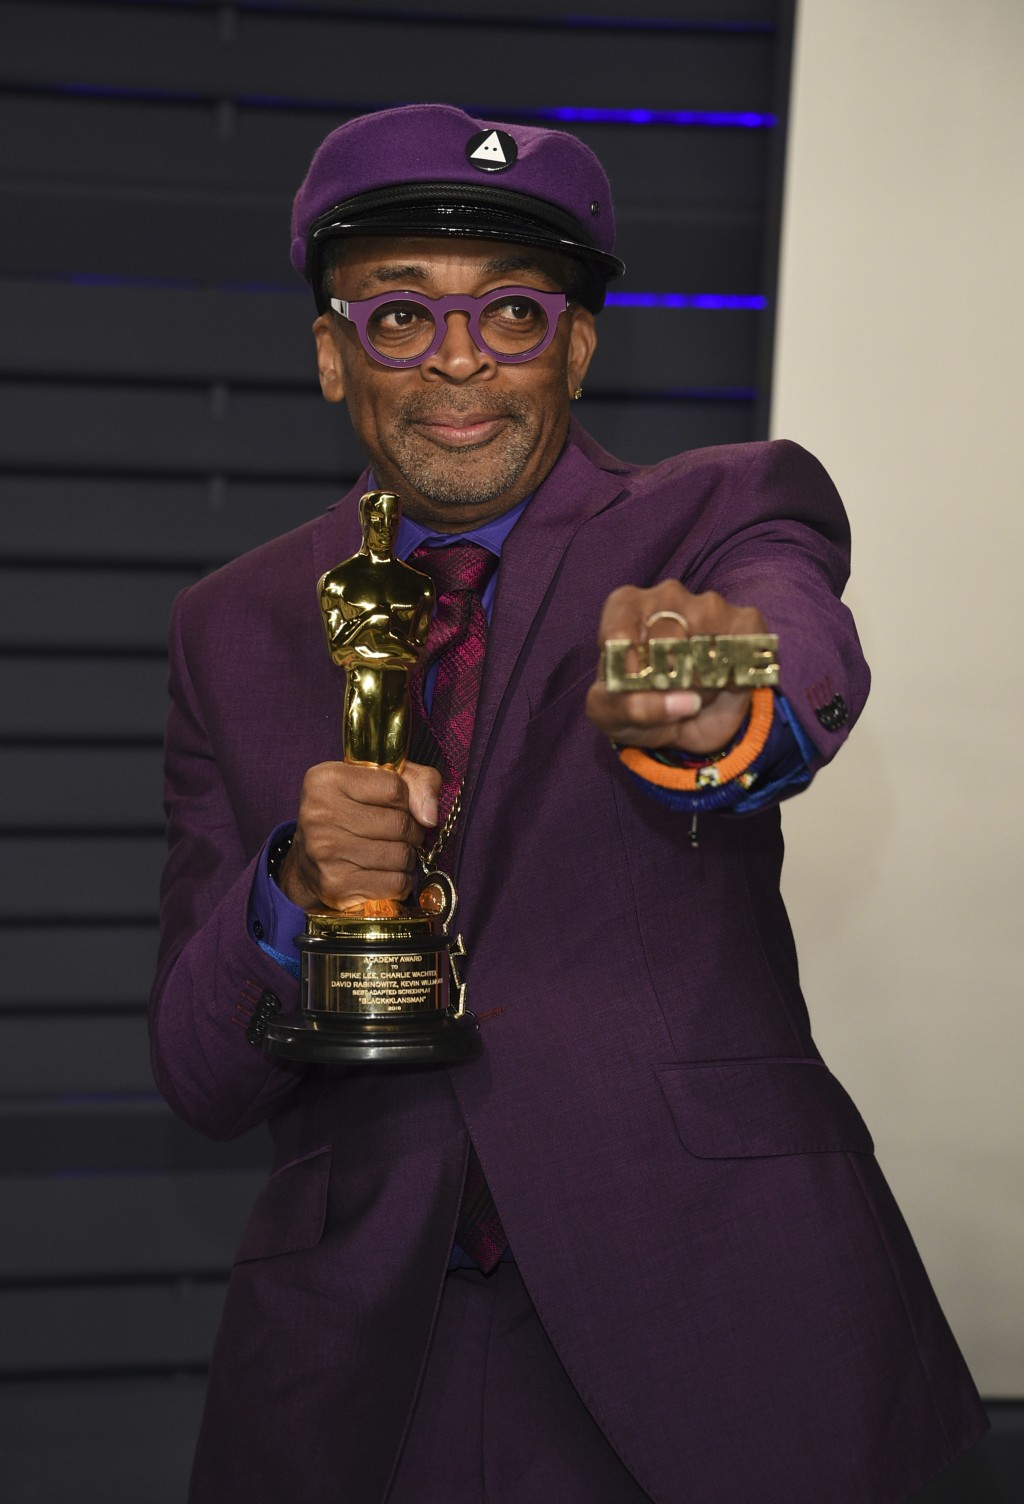 Spike Lee arrives at the Vanity Fair Oscar Party on Sunday, Feb. 24, 2019, in Beverly Hills, Calif. (Photo by Evan Agostini/Invision/AP)